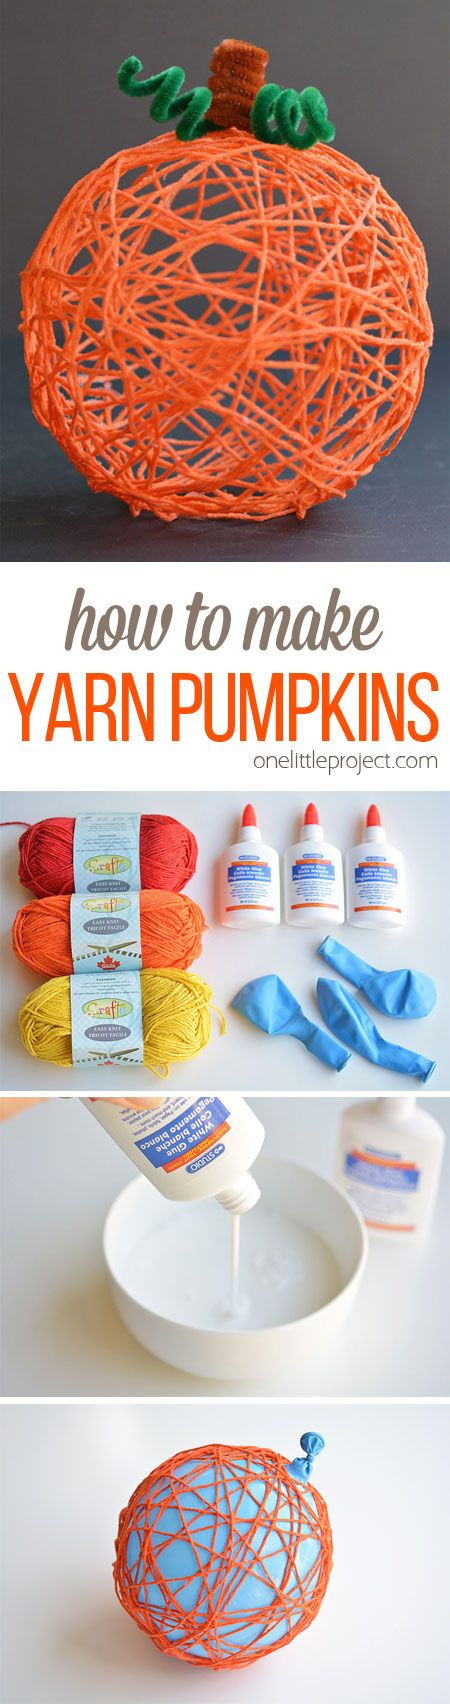 How To Make Yarn Pumpkins Using Balloons Halloween DiyHaloween